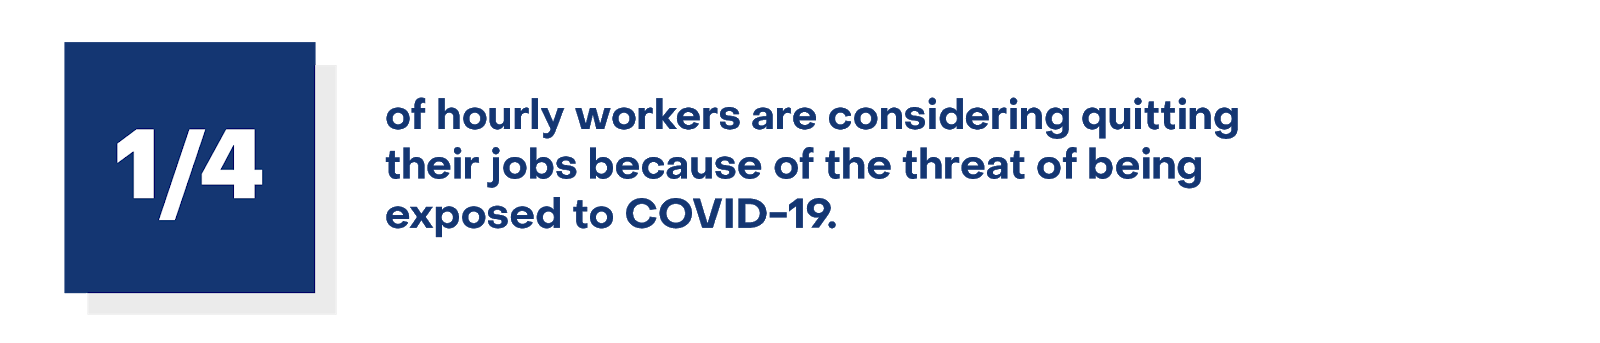 1/4 of hourly workers are considering quitting their jobs because of the threat of being exposed to COVID-19